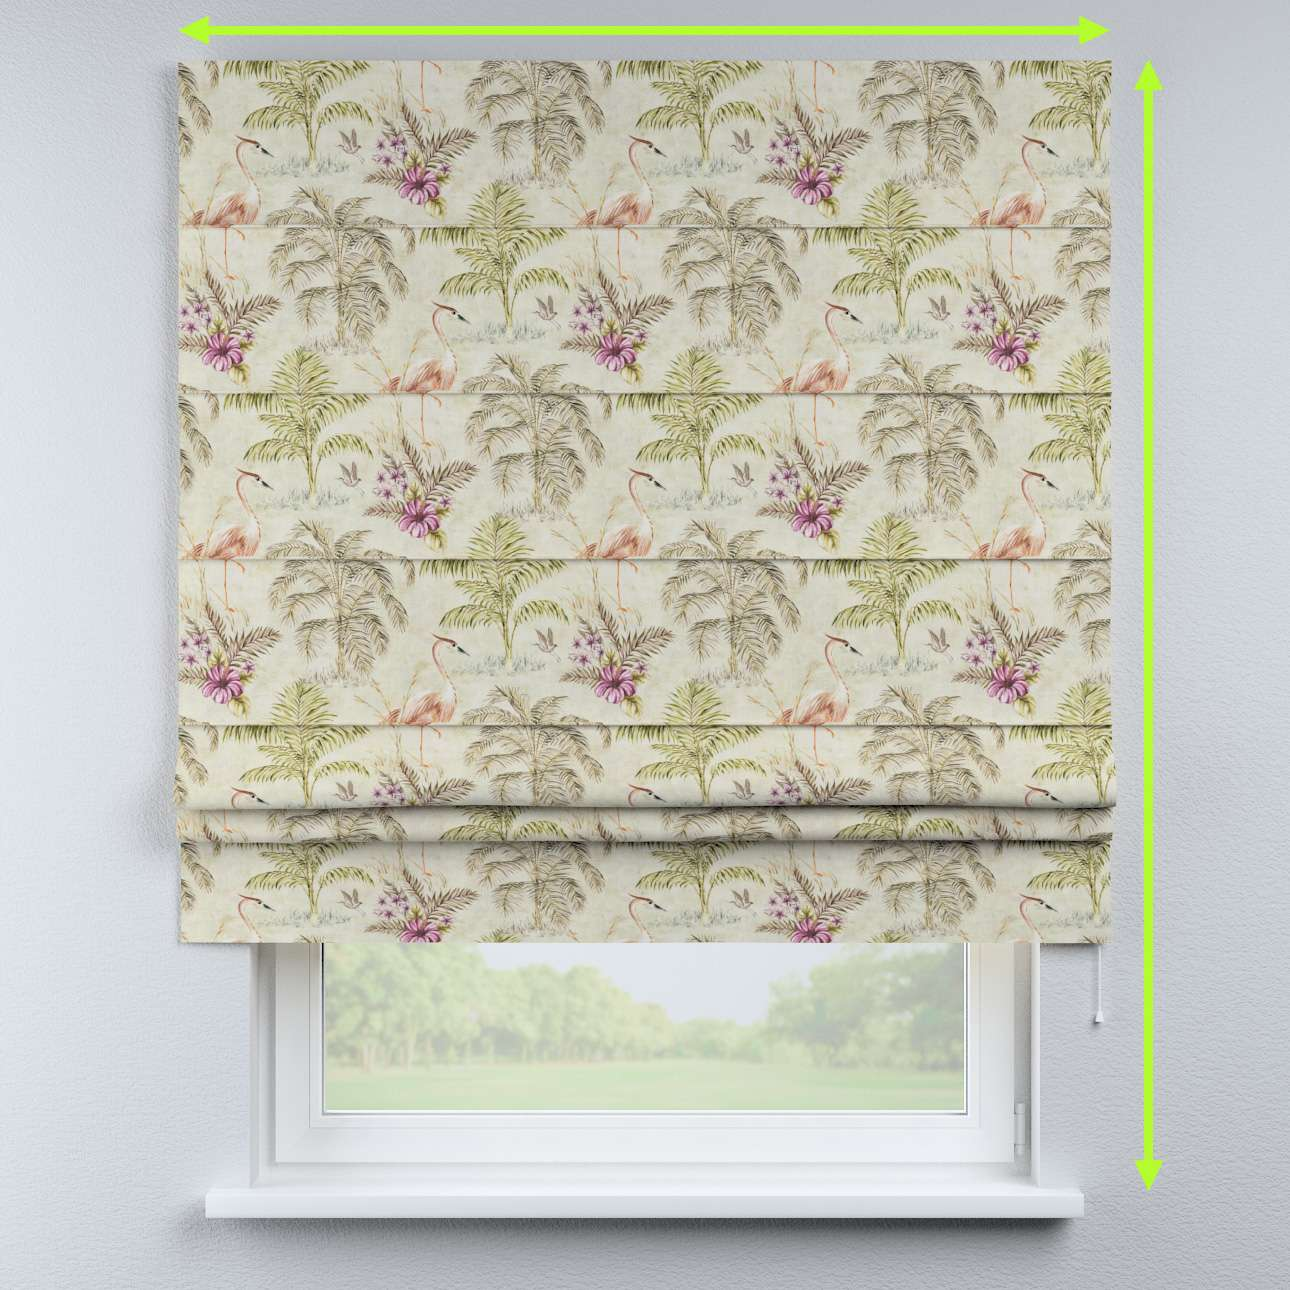 Padva roman blind in collection Tropical Island, fabric: 142-61